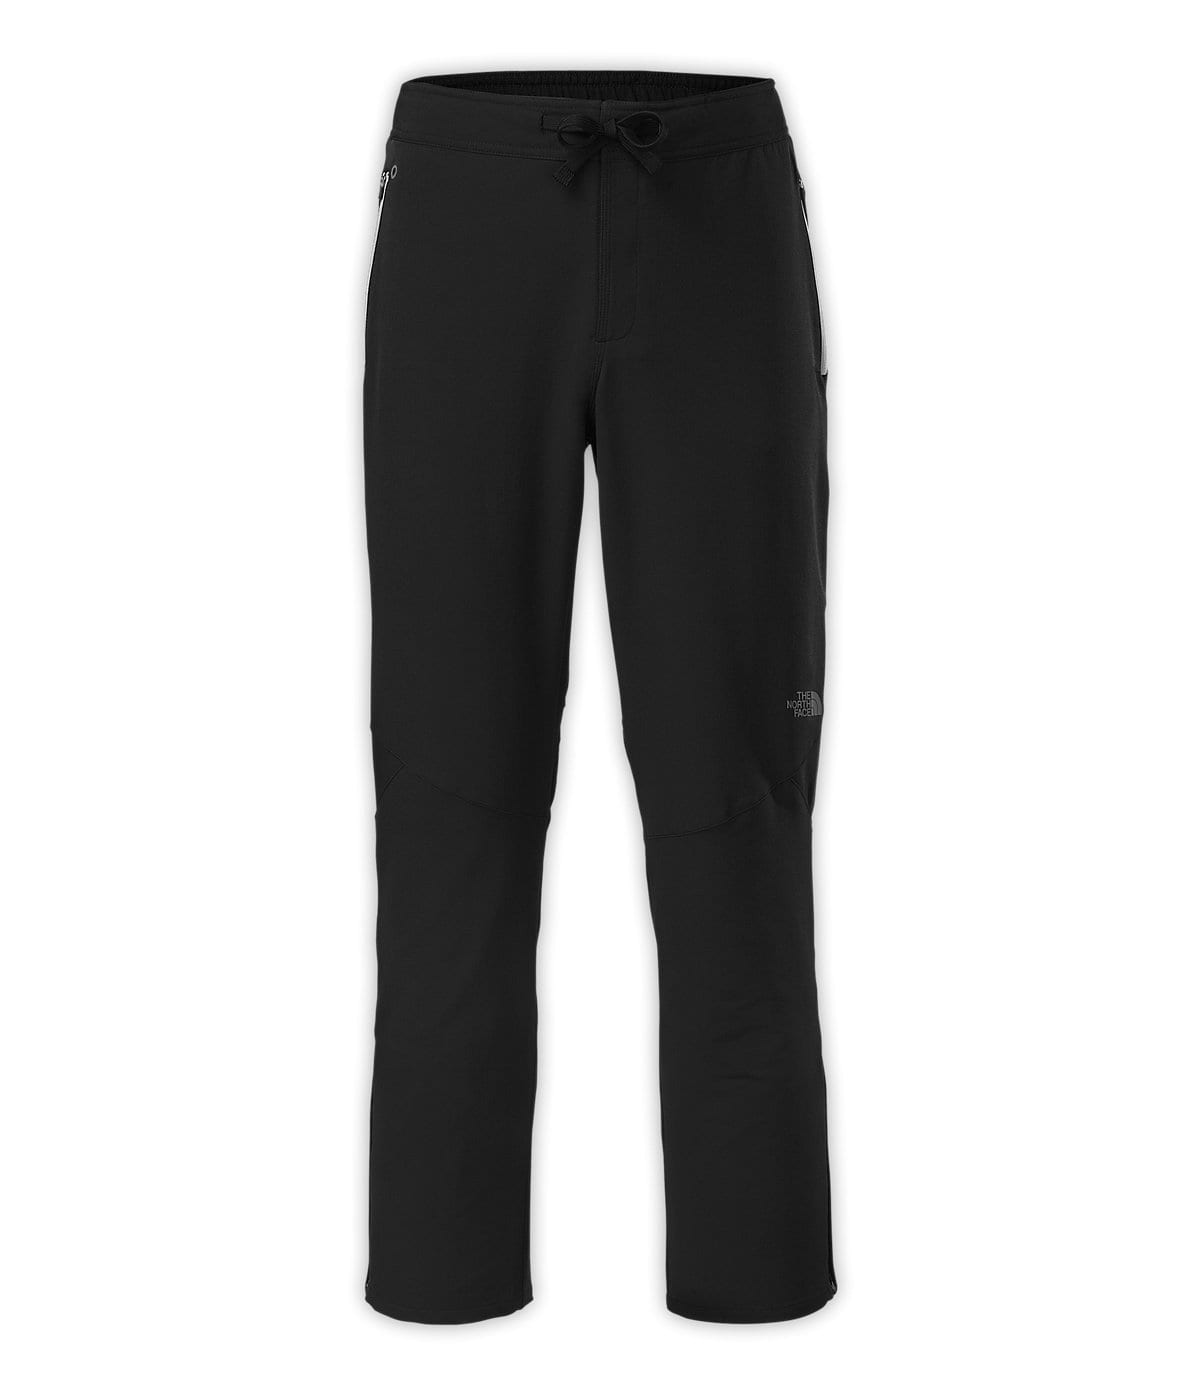 The North Face Kilowatt Pant